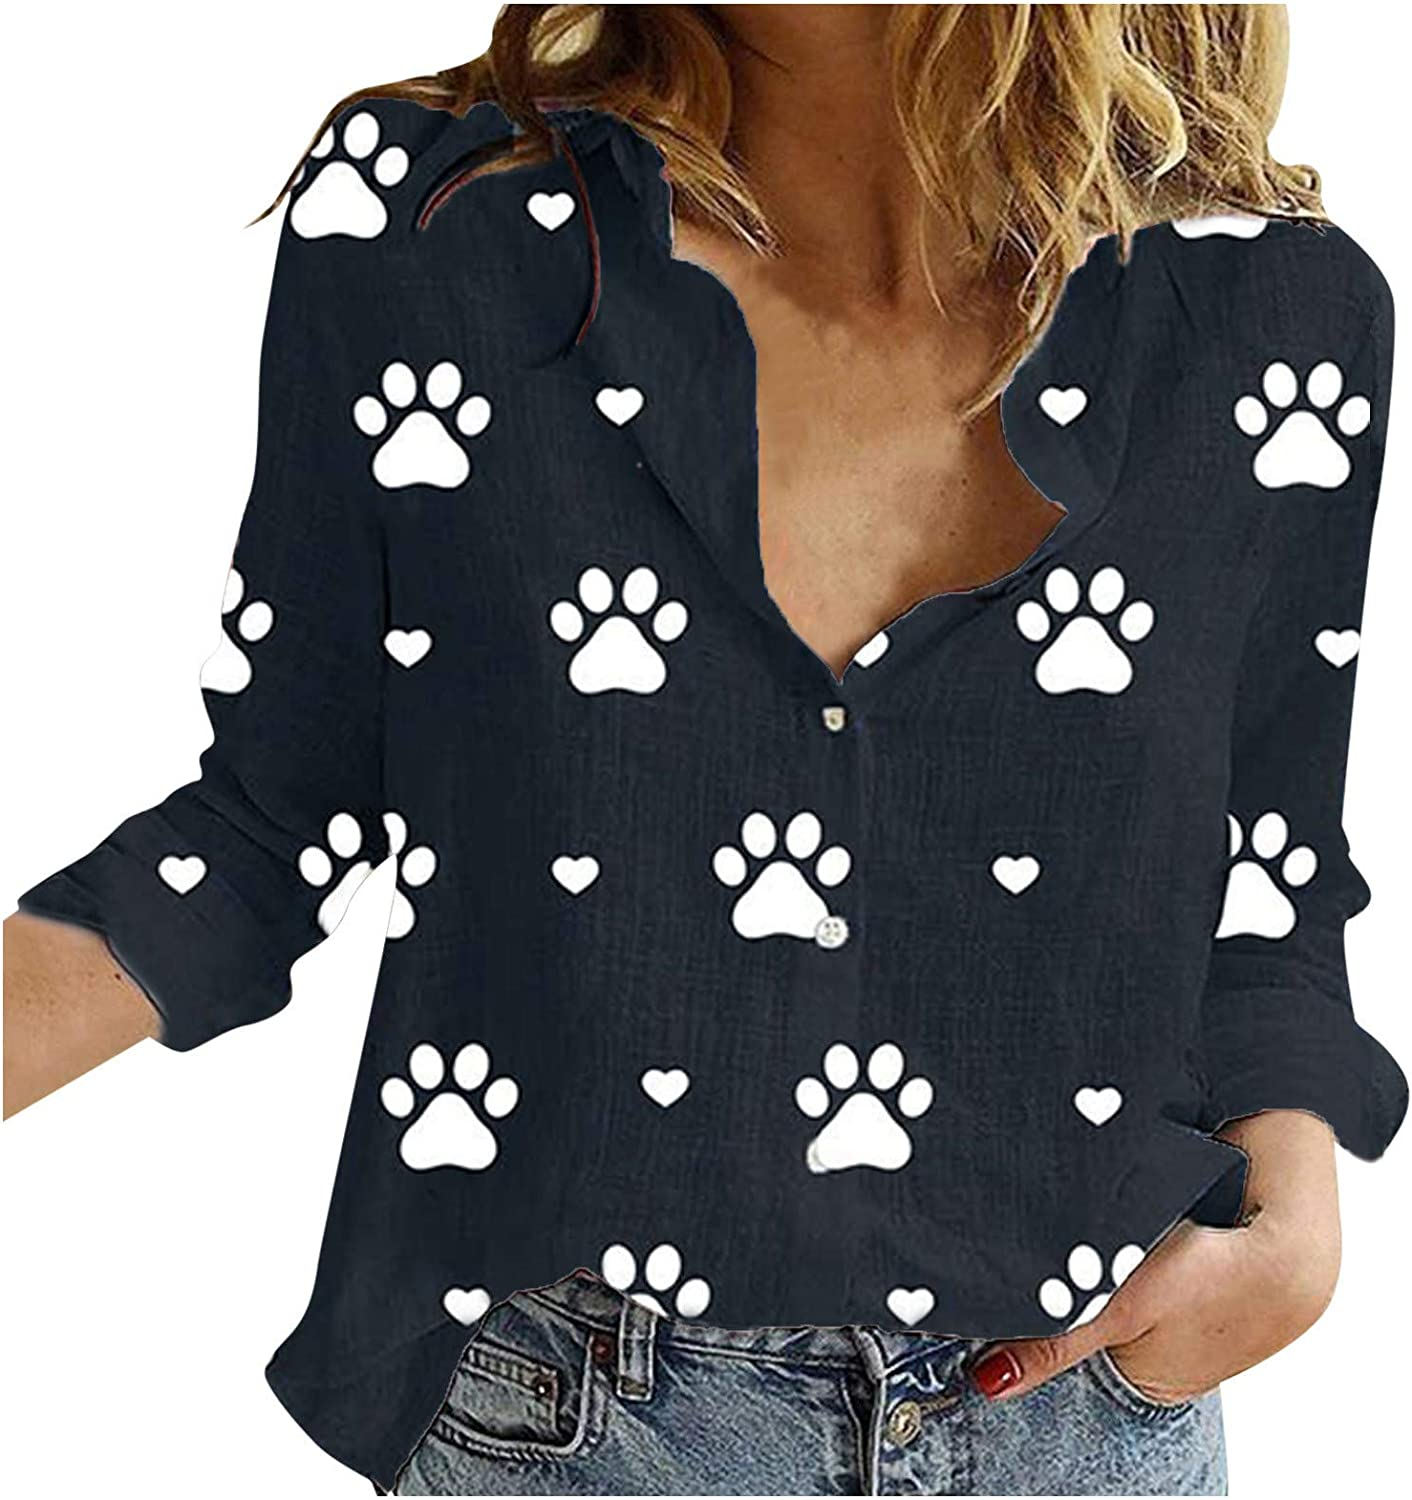 MASZONE Sweatshirts for Women, Womens Button up T-Shirt Cute Bear Paw Print Long Sleeve Pullover with Designs Casual Top